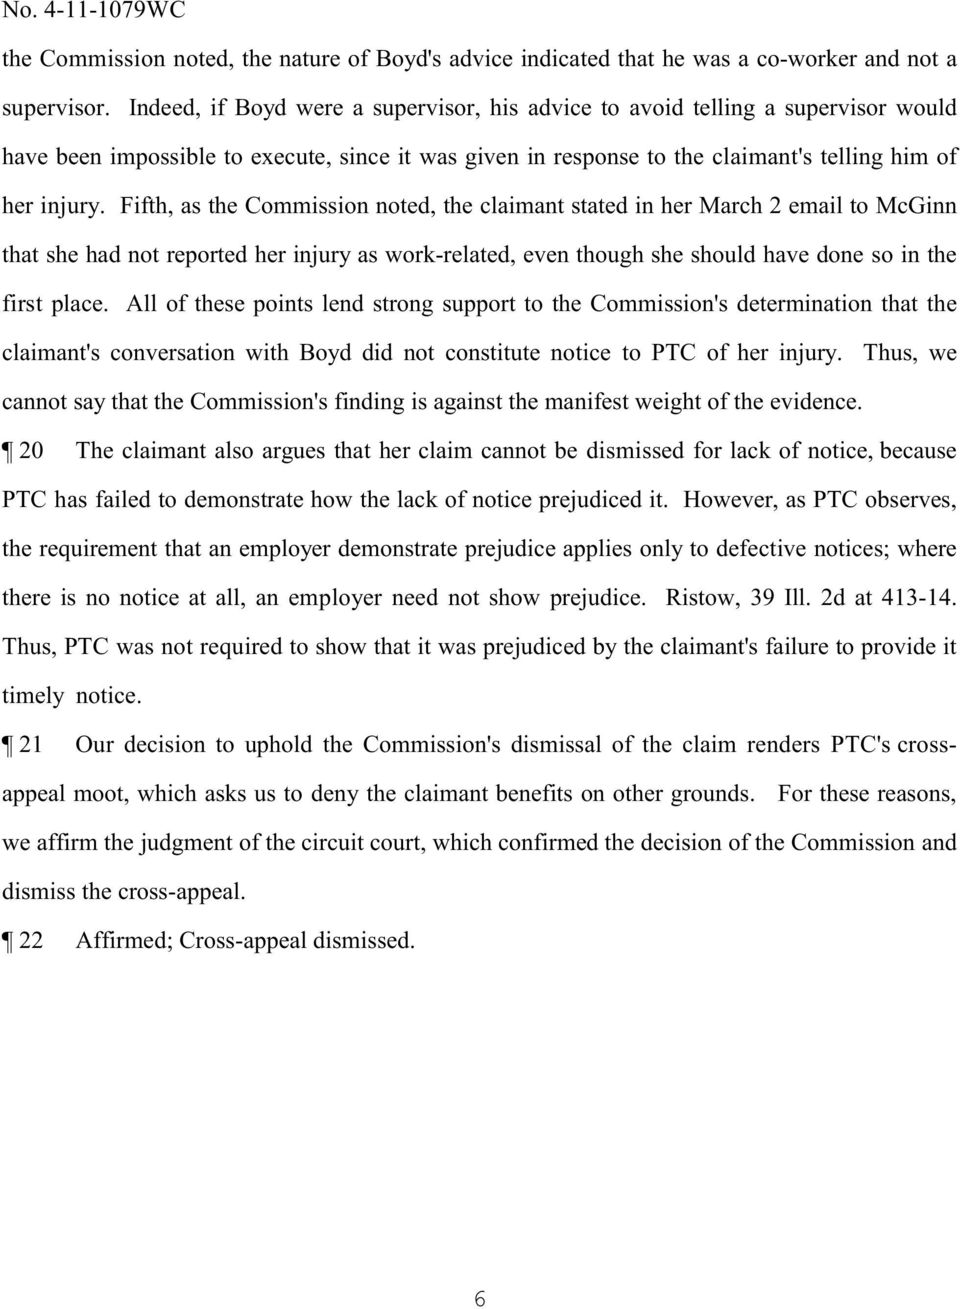 Fifth, as the Commission noted, the claimant stated in her March 2 email to McGinn that she had not reported her injury as work-related, even though she should have done so in the first place.